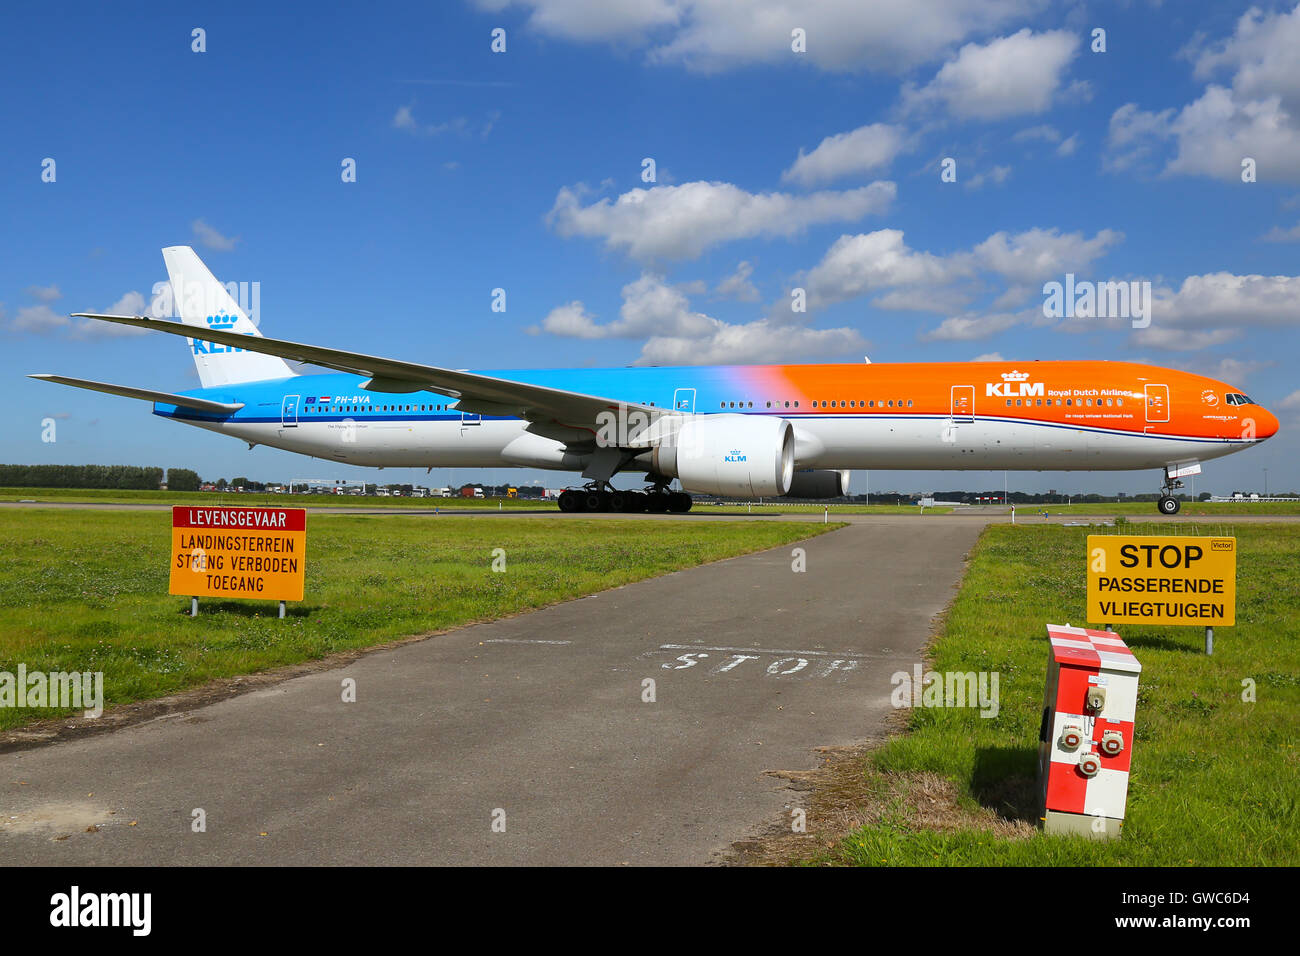 KLM Royal Dutch Airlines (Orange Pride) taxis to the gate at Amsterdam Schipol airport. - Stock Image